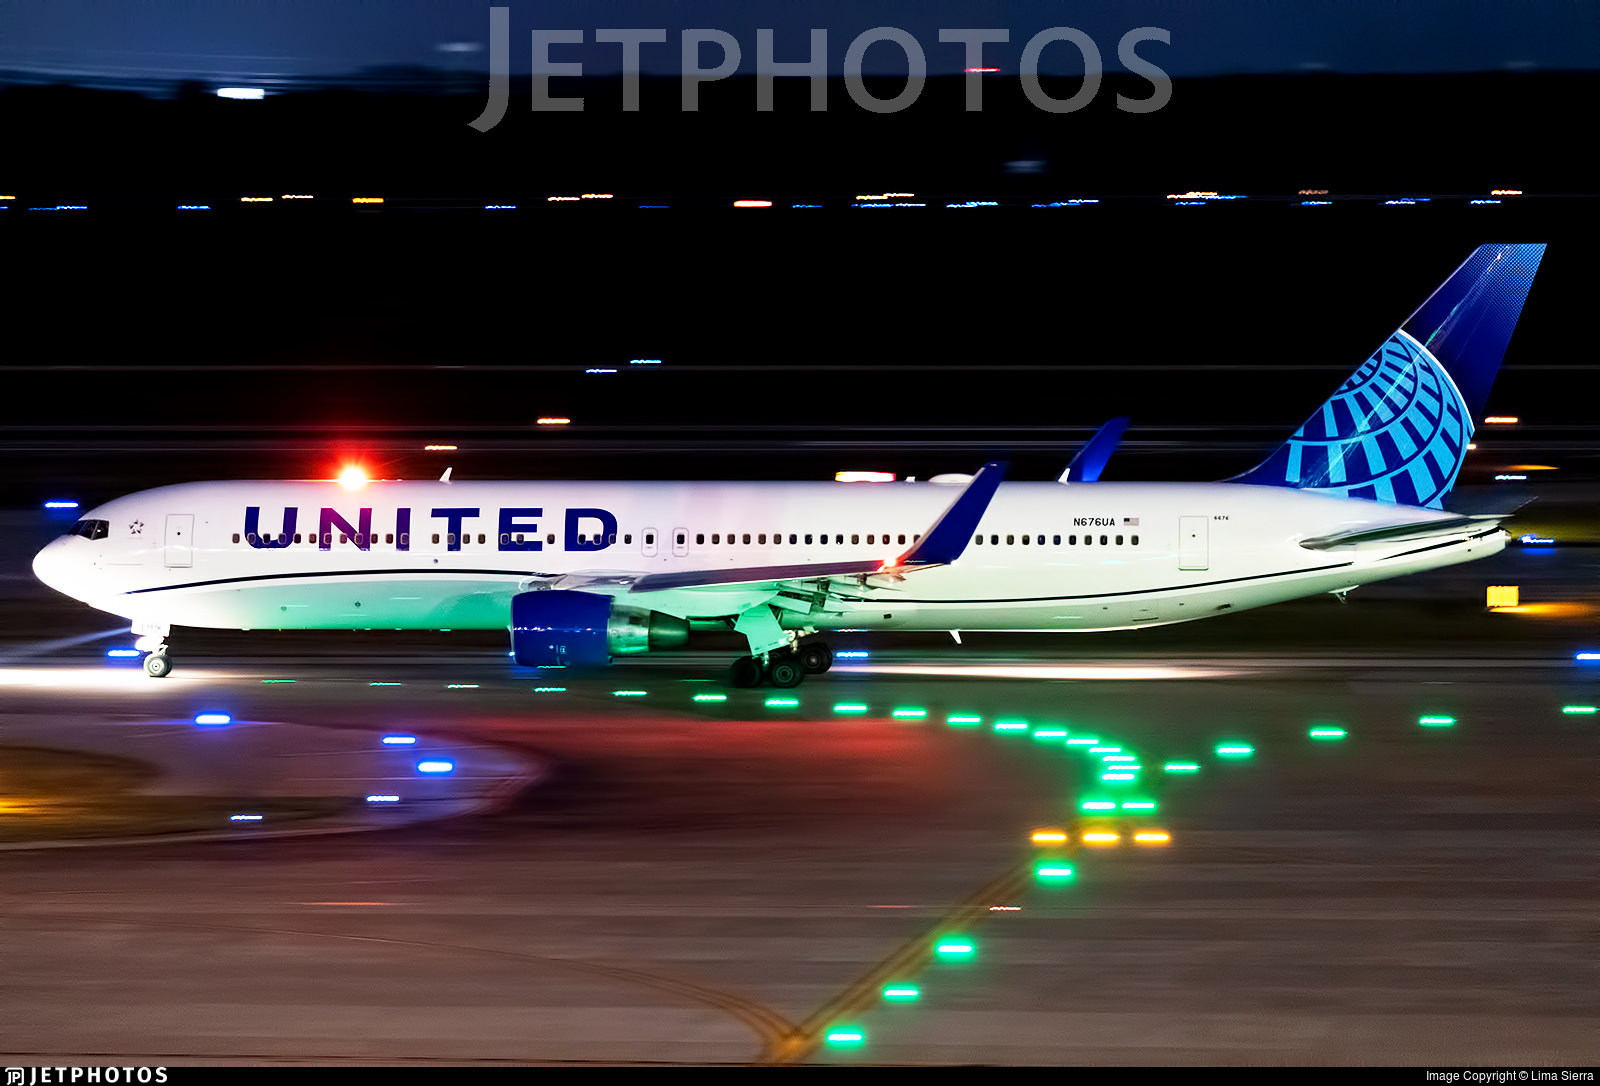 The first widebody aircraft to wear United's revised livery